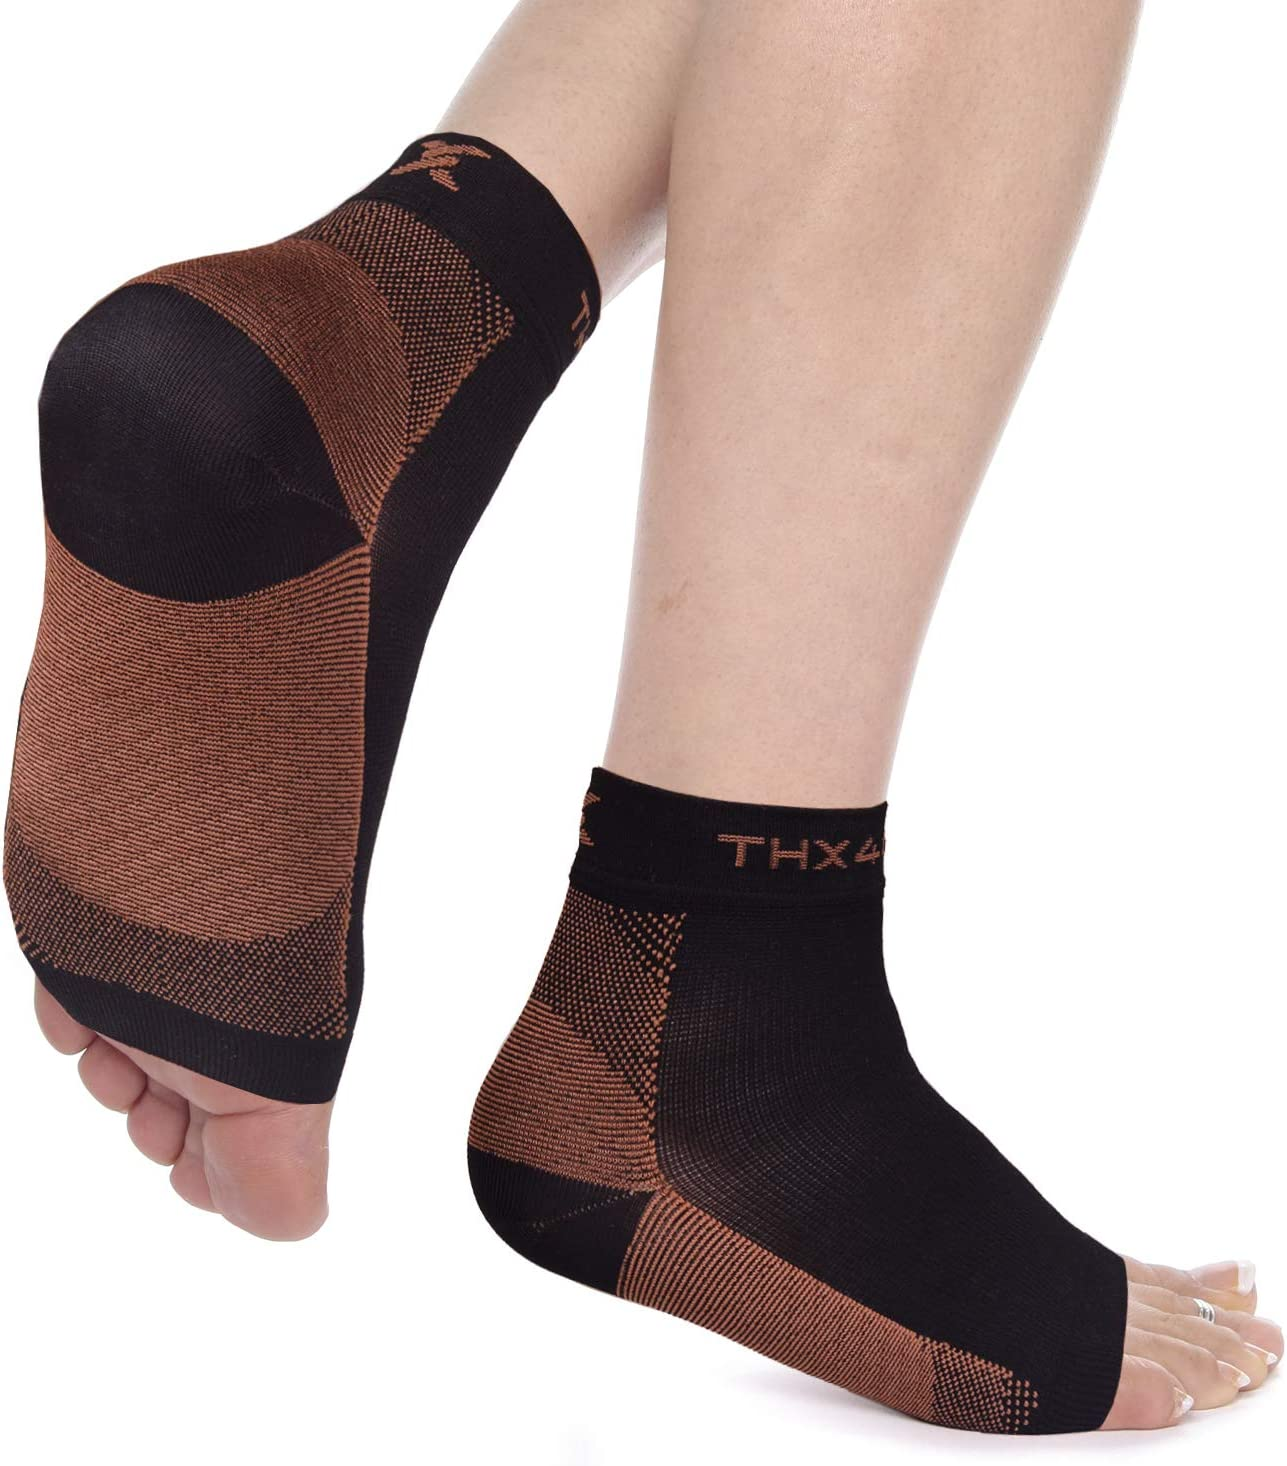 Copper Infused Compression Ankle Socks Women /& Men Black, S//M Anti-Odor Copper Crew Socks 6 Pairs Antibacterial Plantar Fasciitis Socks for Arch Pain Athletic Sport Running Travel